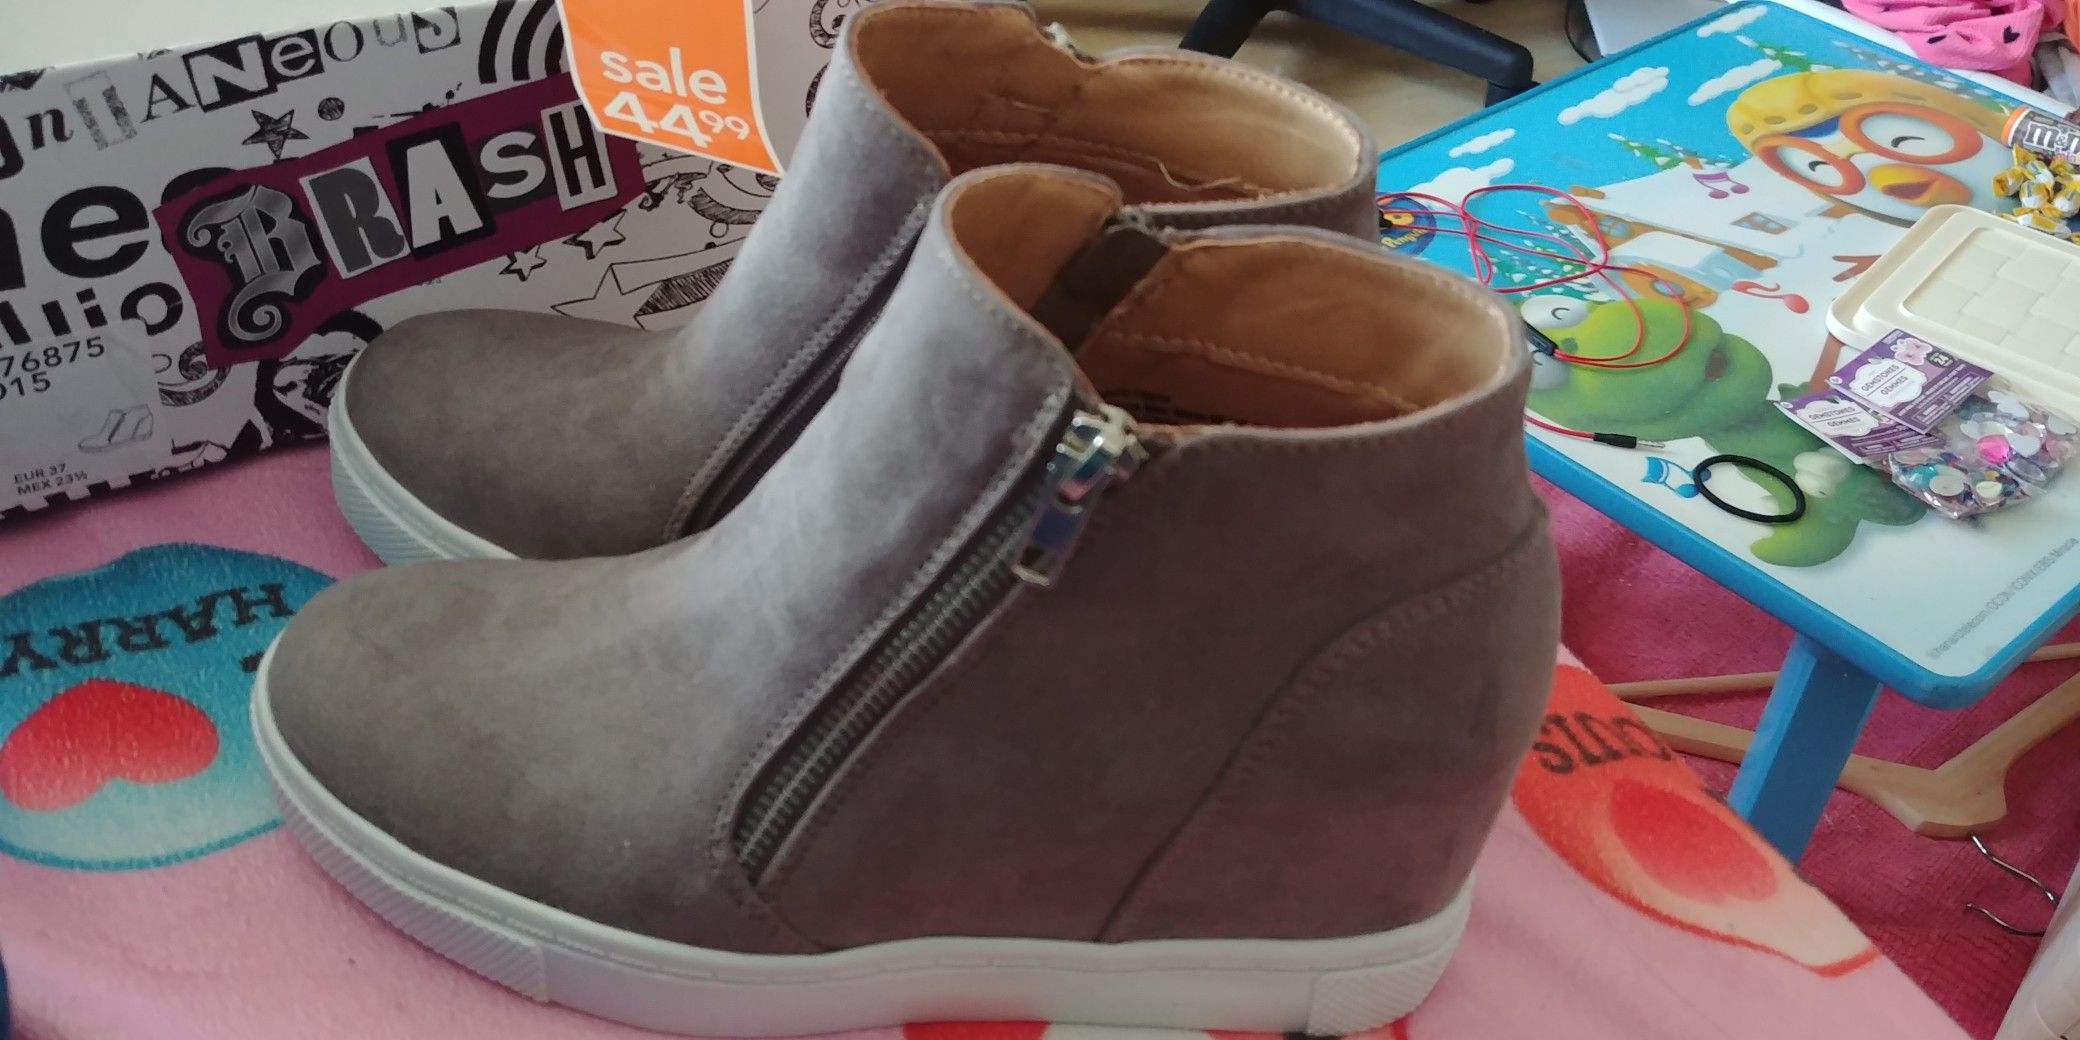 88cd670da0 My Brand New Brash Grey CeCe Hidden Wedge Casual Sneakers That I Bought  Today From Payless ShoeSource @ Coquitlam Centre Mall!